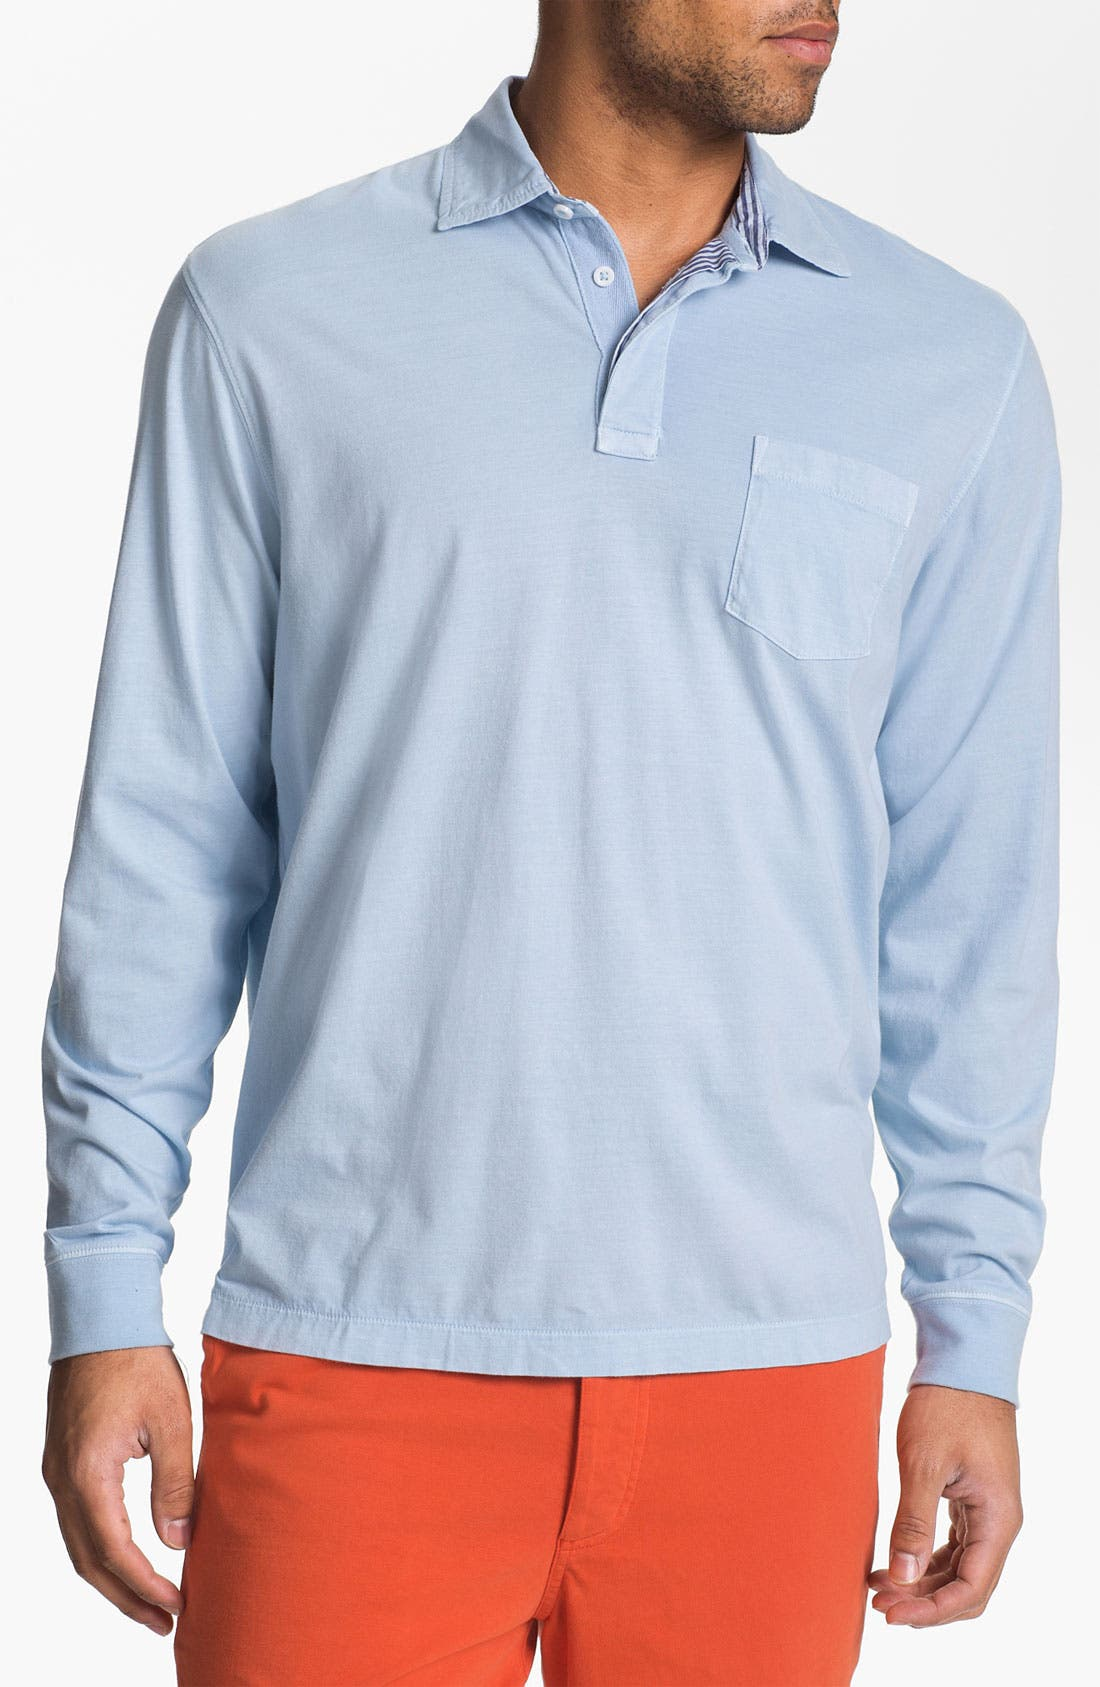 Alternate Image 1 Selected - Vineyard Vines 'Markers' Regular Fit Polo